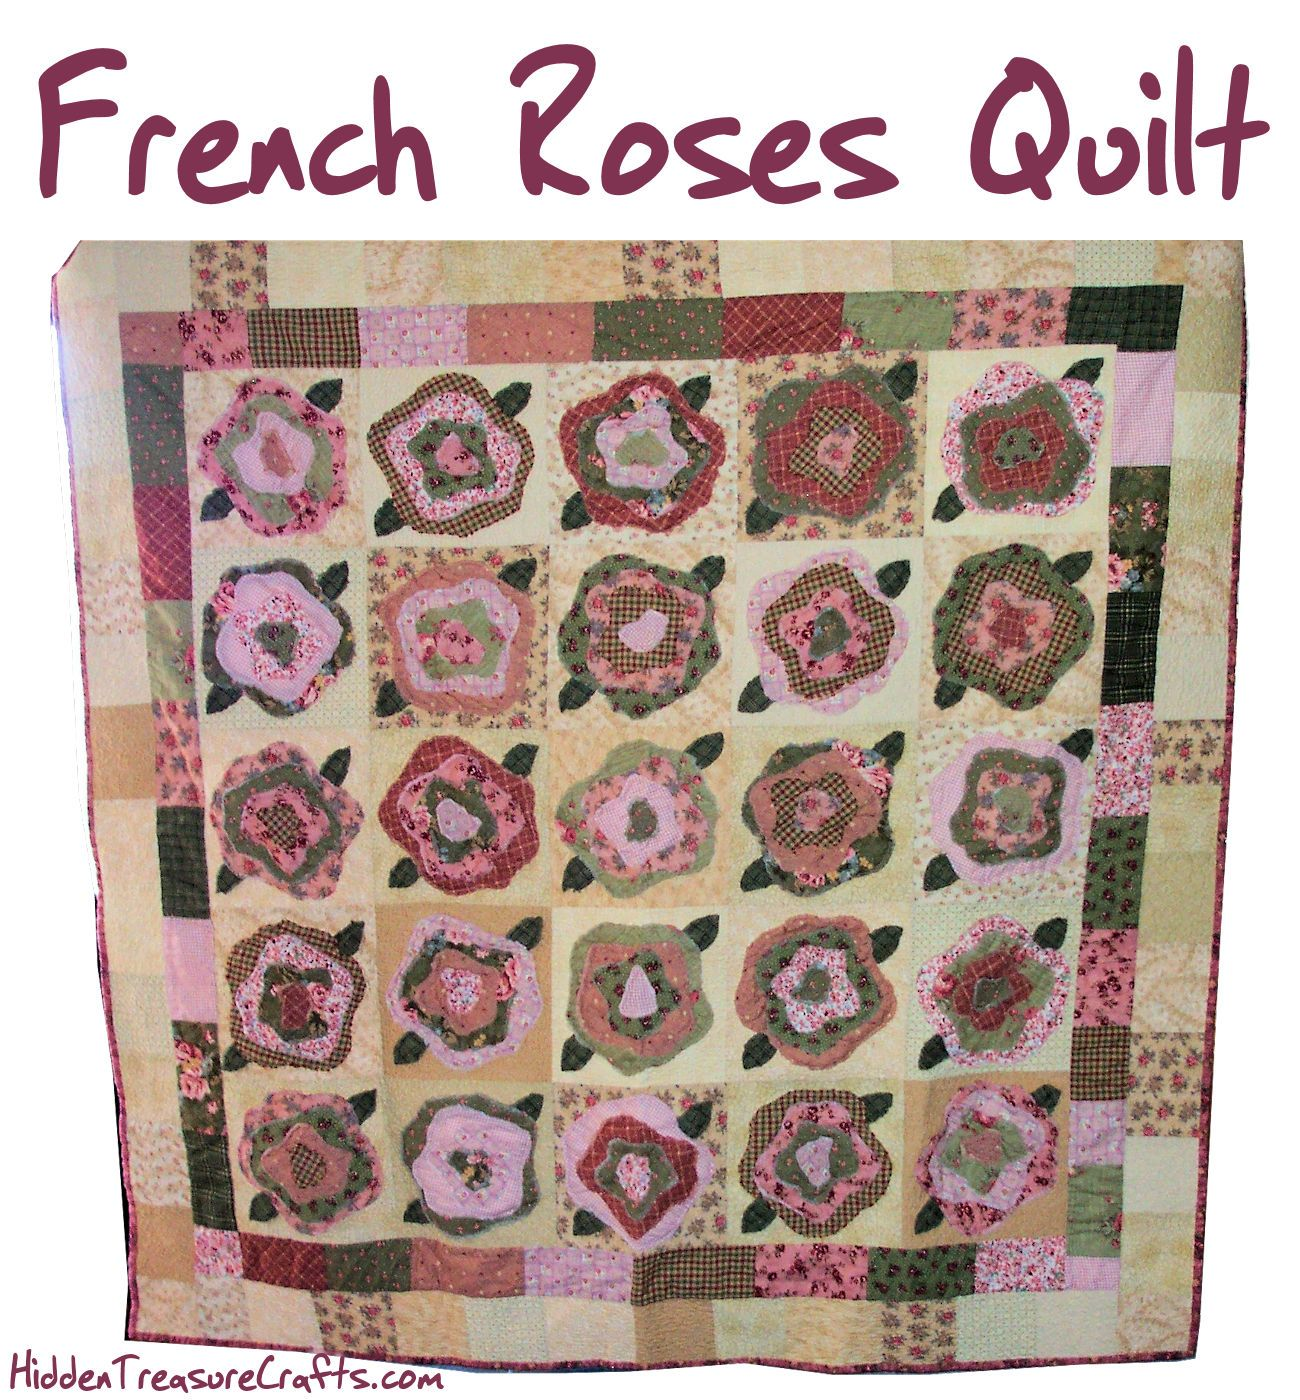 French Roses Quilt by Heather French | Pictorial Quilts: Botanical ... : pictorial quilt tutorial - Adamdwight.com